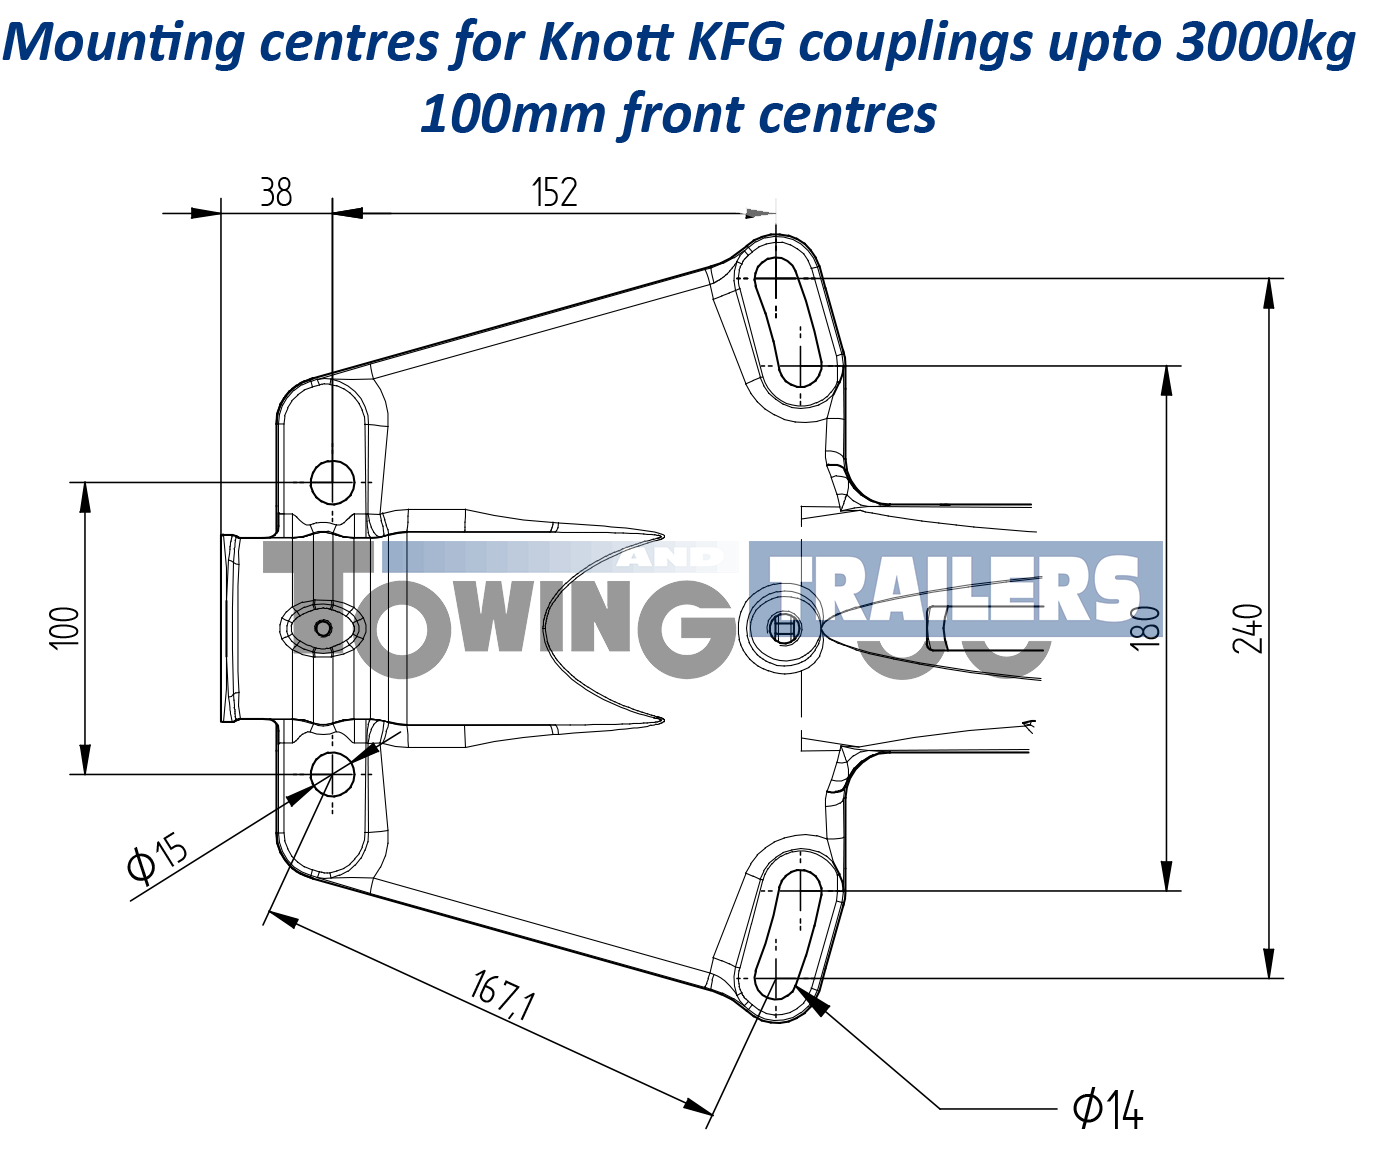 Knott Kfg27 Trailer Coupling Cast Hitch 2700kg For A Frame Used On Blog 7 Pin 12n Wiring Diagram How To Wire Plug Mounting Dimensions